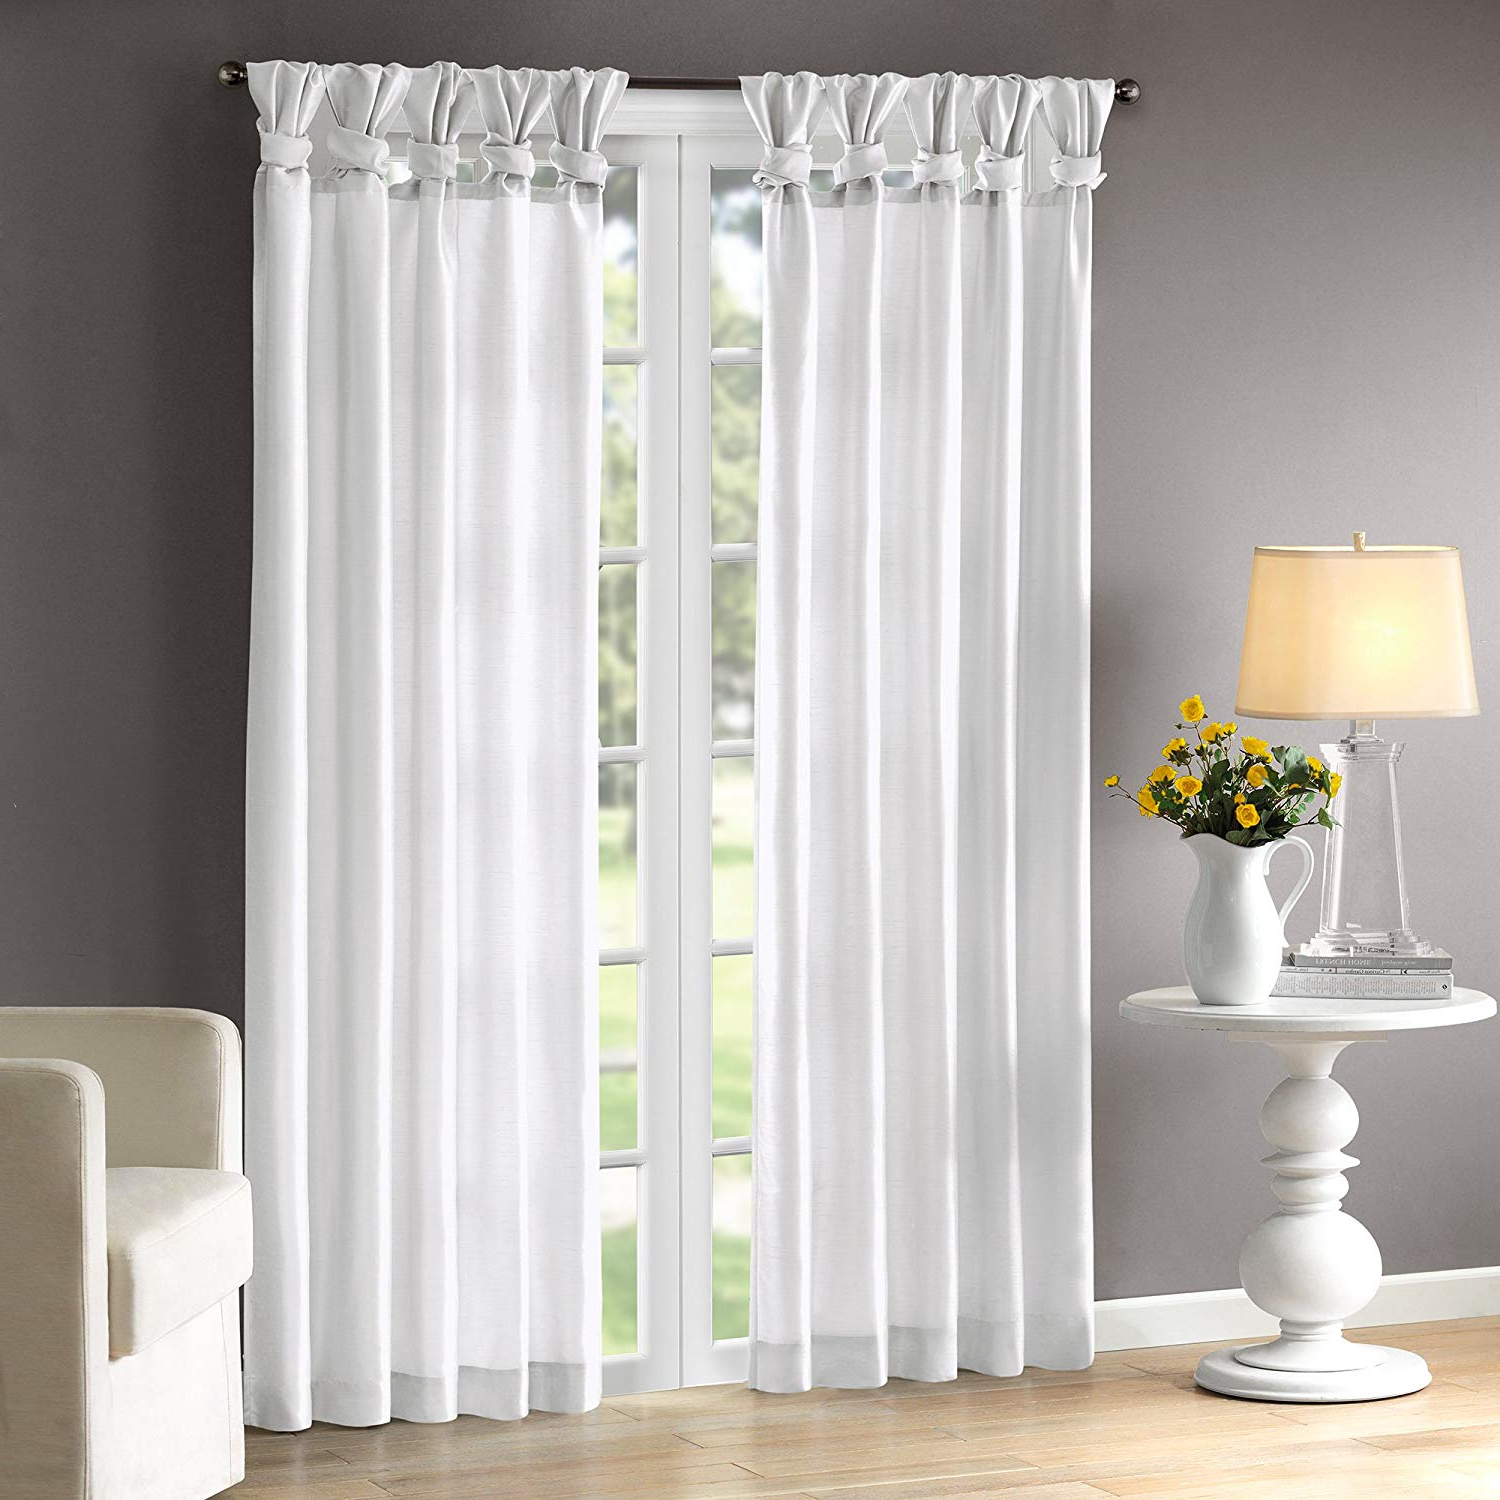 Twisted Tab Lined Single Curtain Panels Intended For 2020 Madison Park Emilia Room Darkening Curtain Diy Twist Tab Window Panel Black Out Drapes For Bedroom And Dorm, 50x95, White (View 9 of 20)